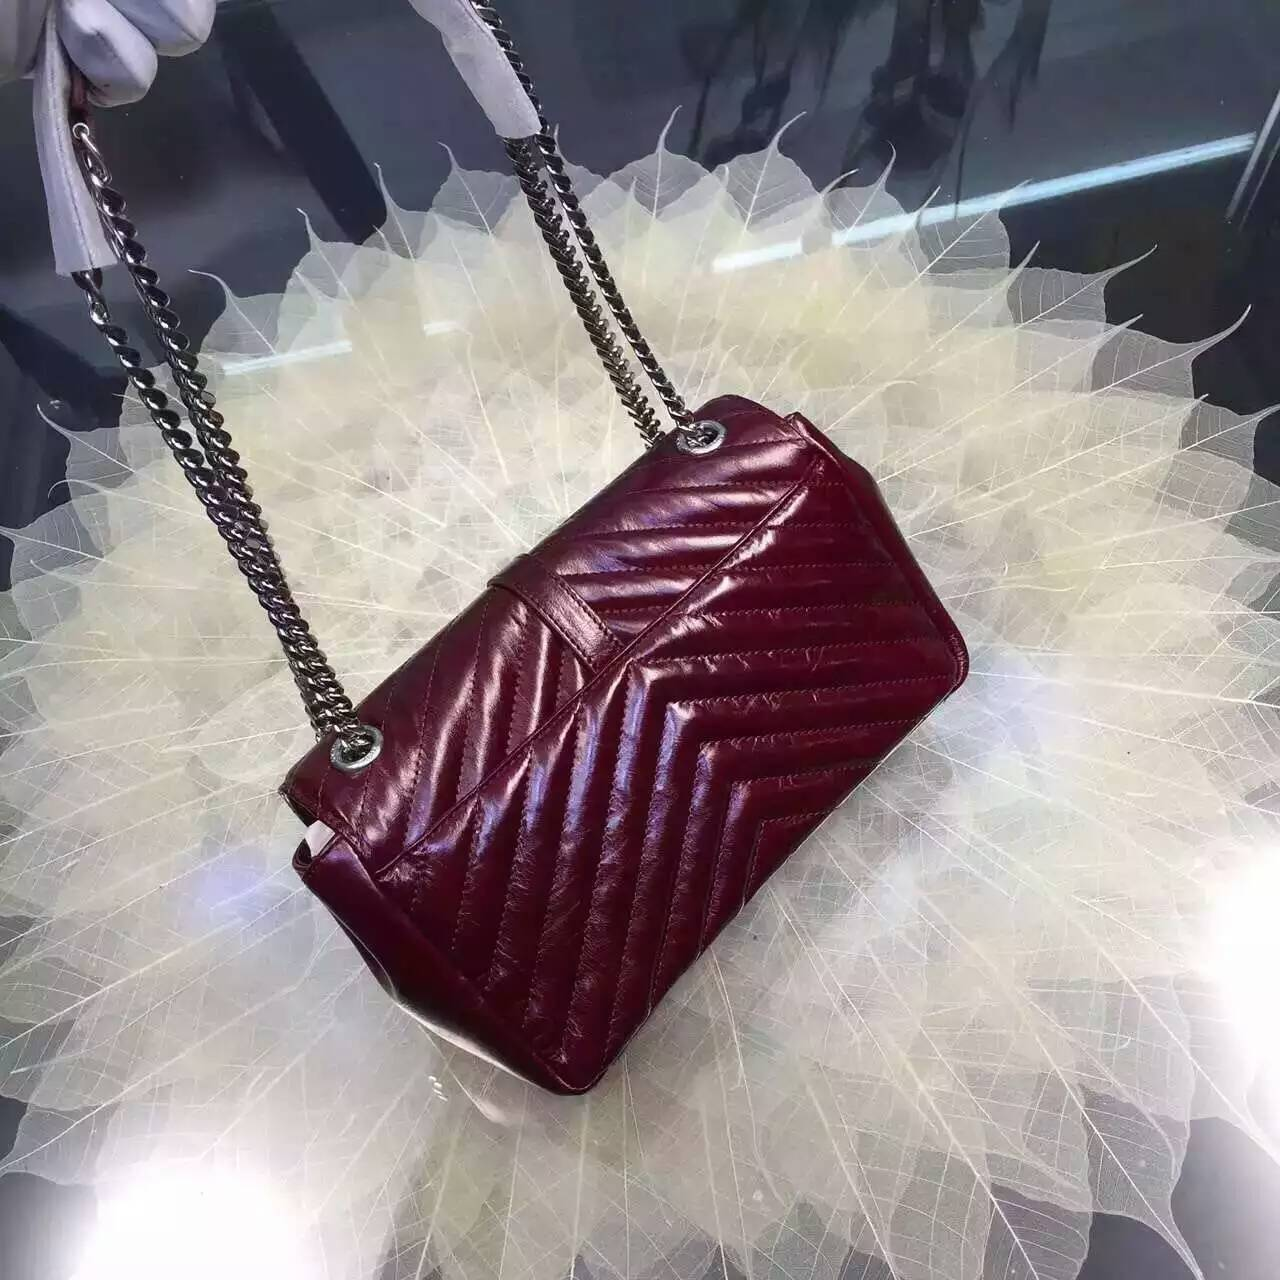 2016 Cheap YSL Out Sale with Free Shipping-Saint Laurent Classic Medium Baby Monogram Satchel in Bordeaux Matelasse Leather Silver